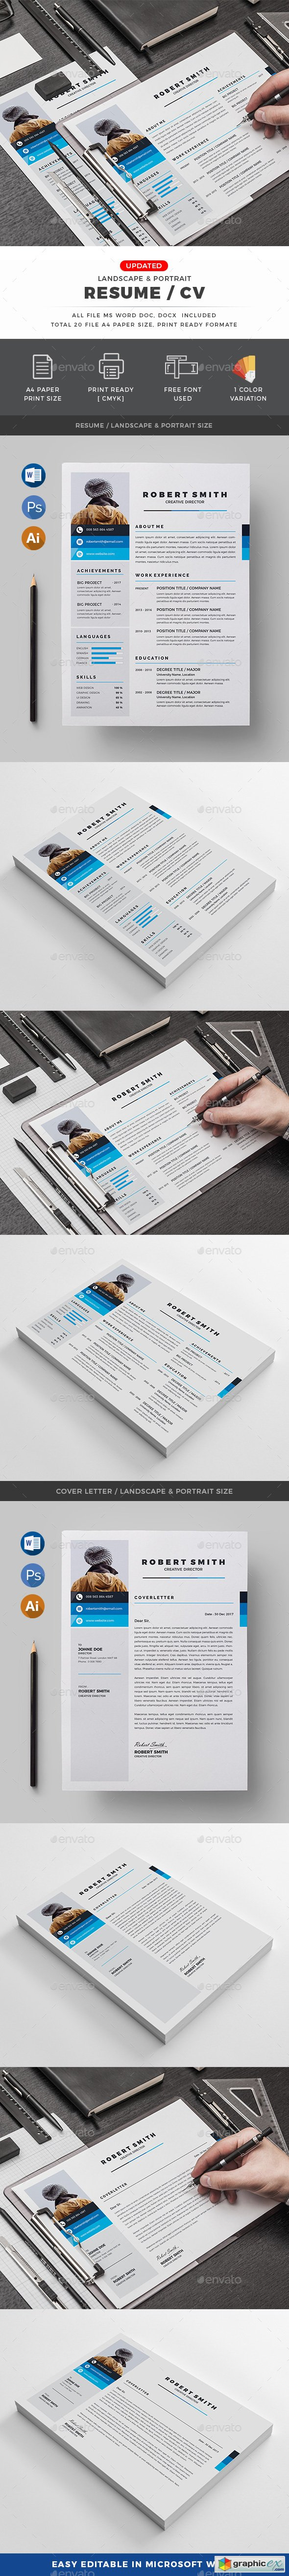 Graphicriver CV